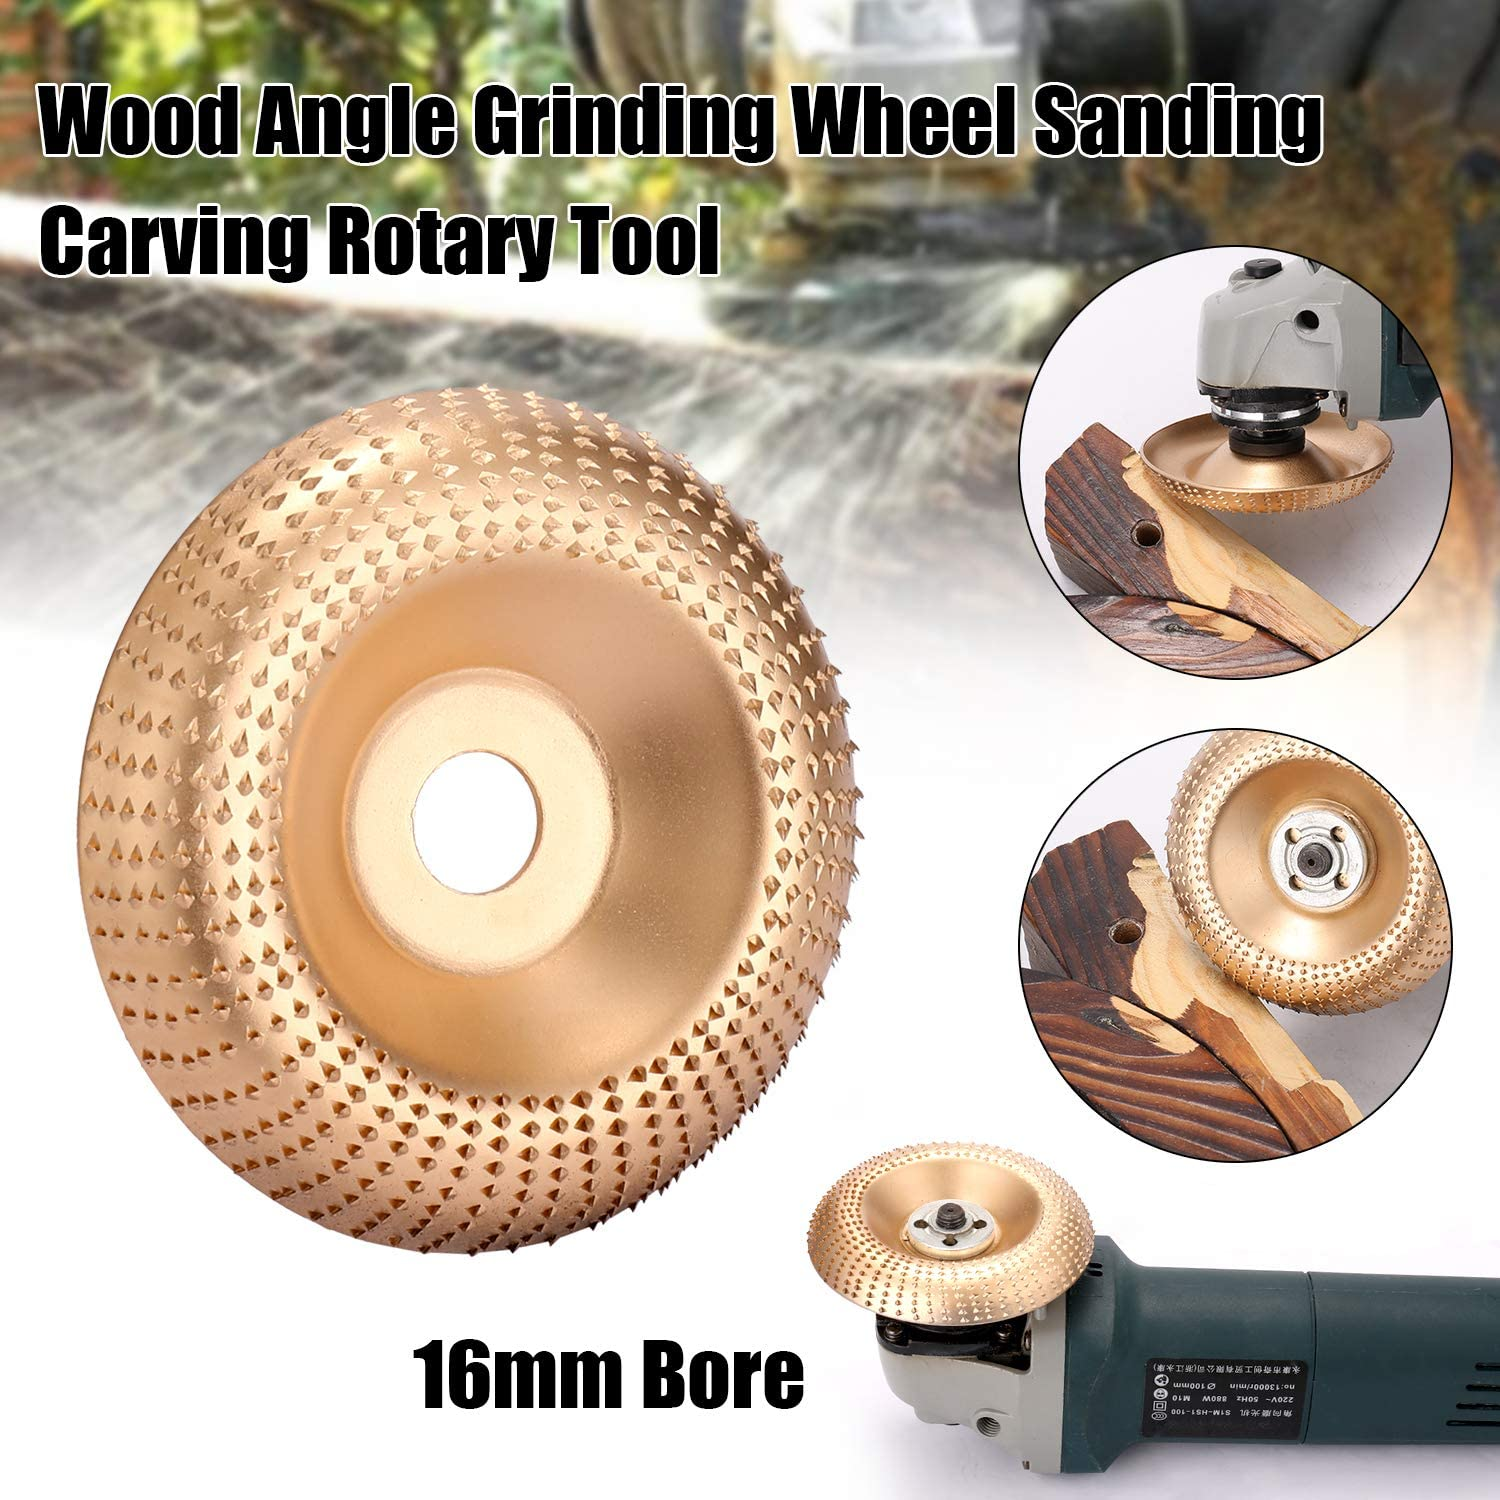 Zitainn Angle Grinding Wheel,Wood Angle Grinding Wheel Sanding Carving Rotary Tool Abrasive Disc for Angle Grinder Tungsten Carbide Coating Bore Shaping 16mm Bore